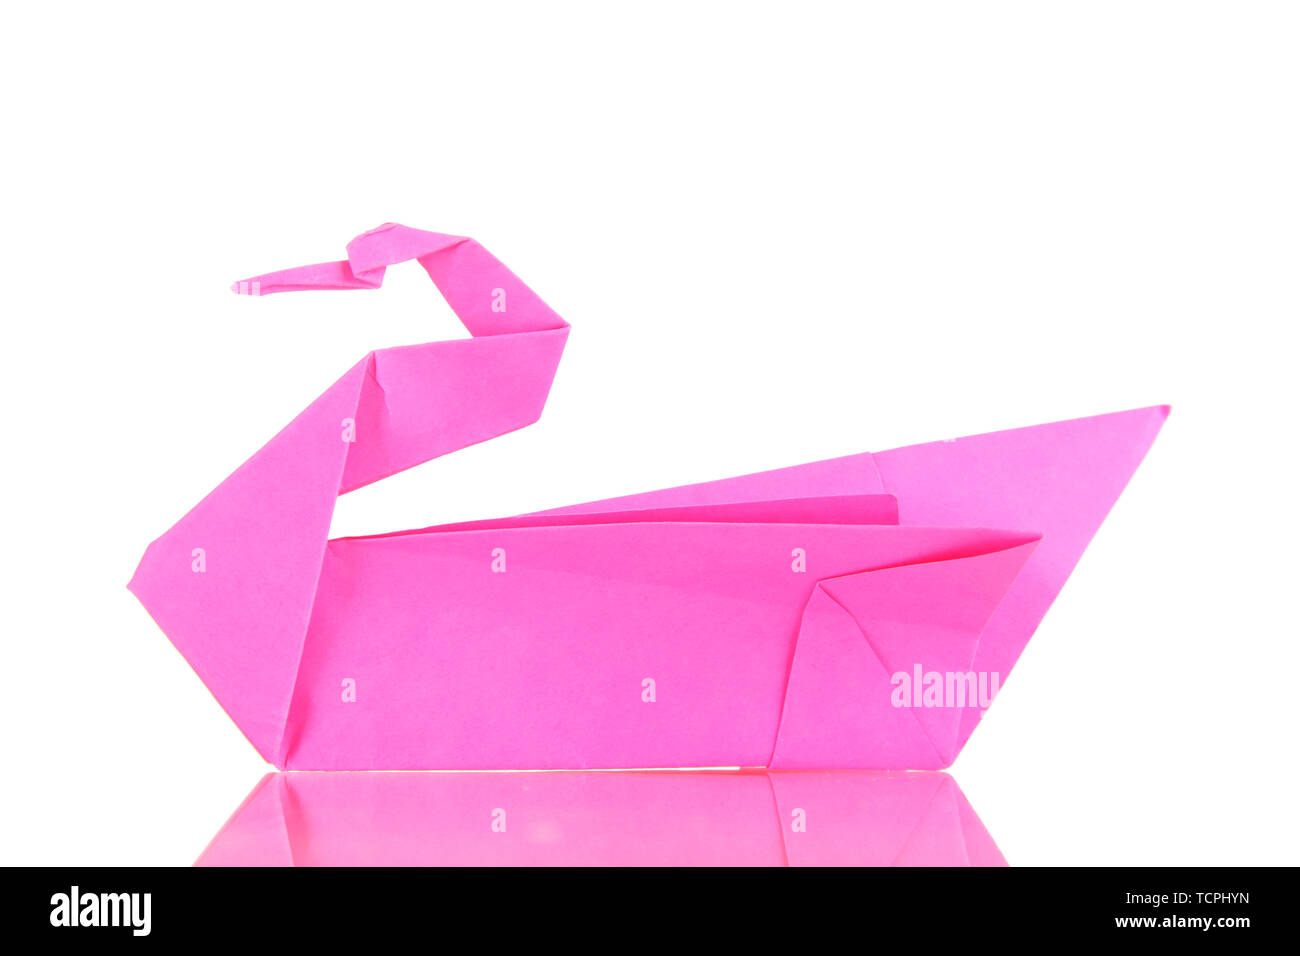 How To Make An Easy Origami Swan - Folding Instructions - Origami ... | 956x1300